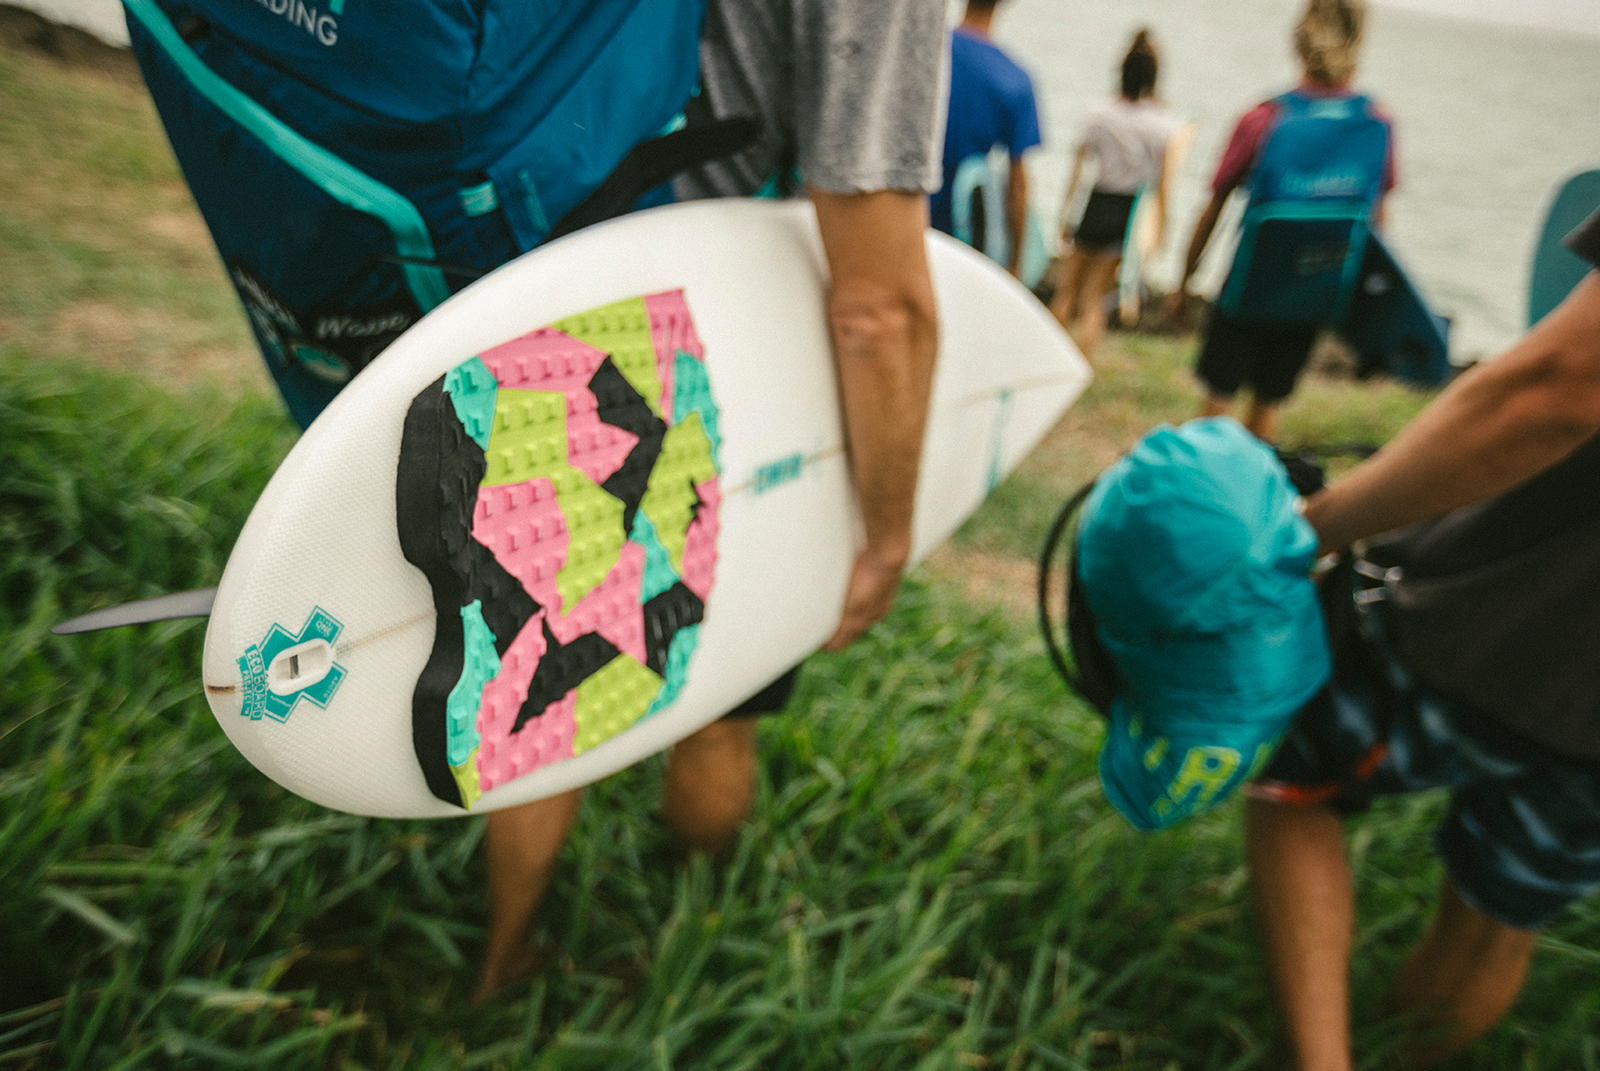 SUSTAINABLE SURF WELCOMES AIRUSH KITEBOARDING TO THE ECOBOARD PROJECT 9